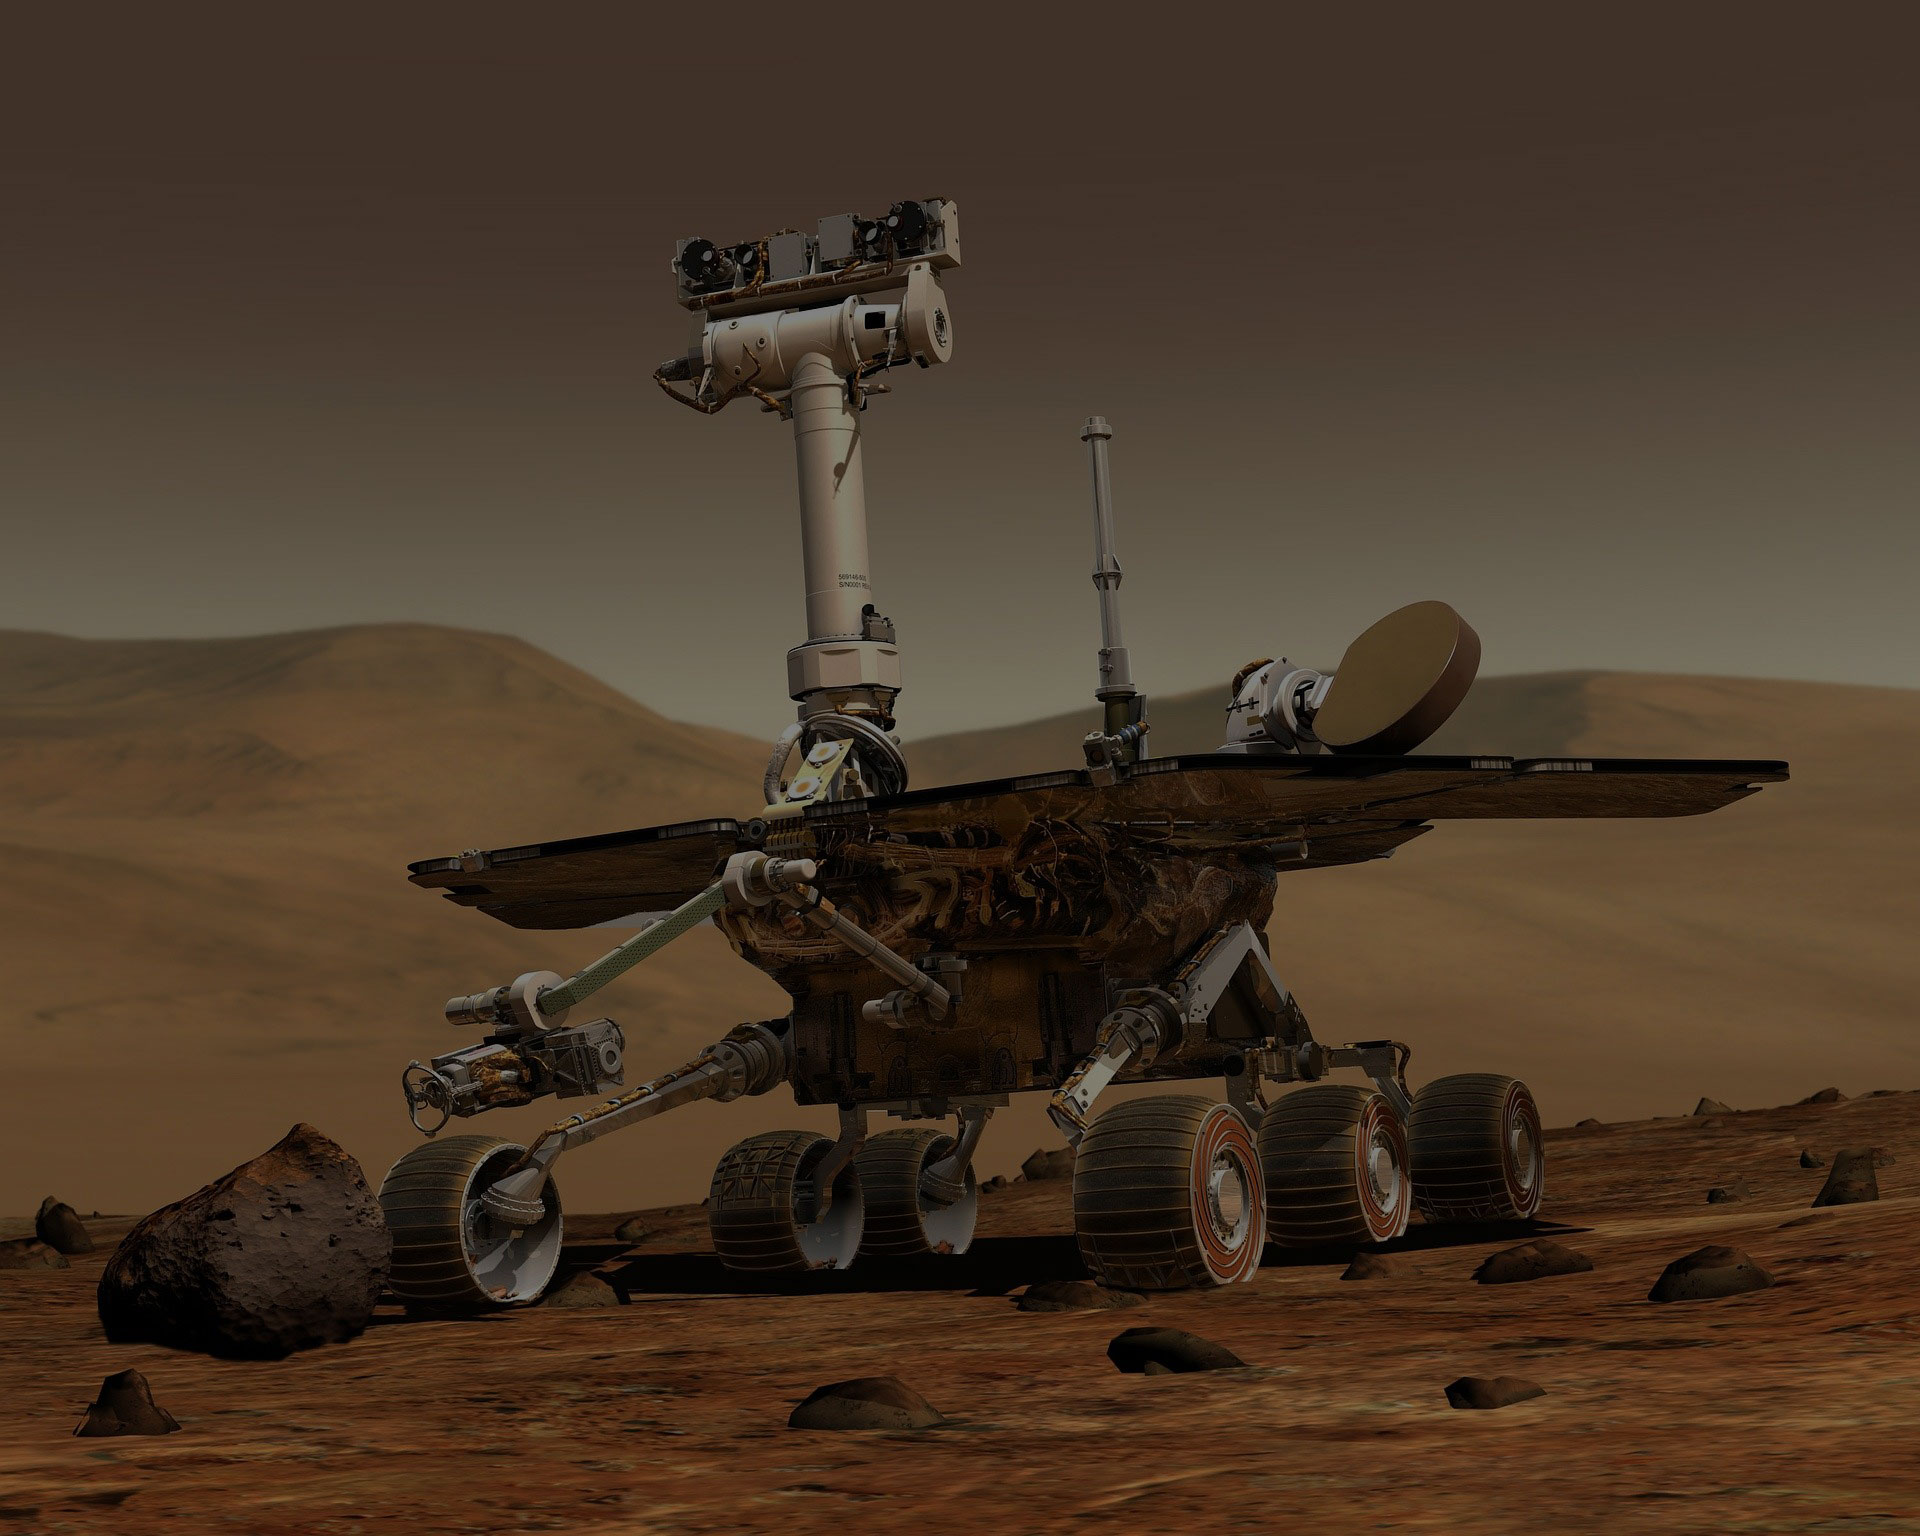 A Stowaway Helicopter on NASA's Mars Rover